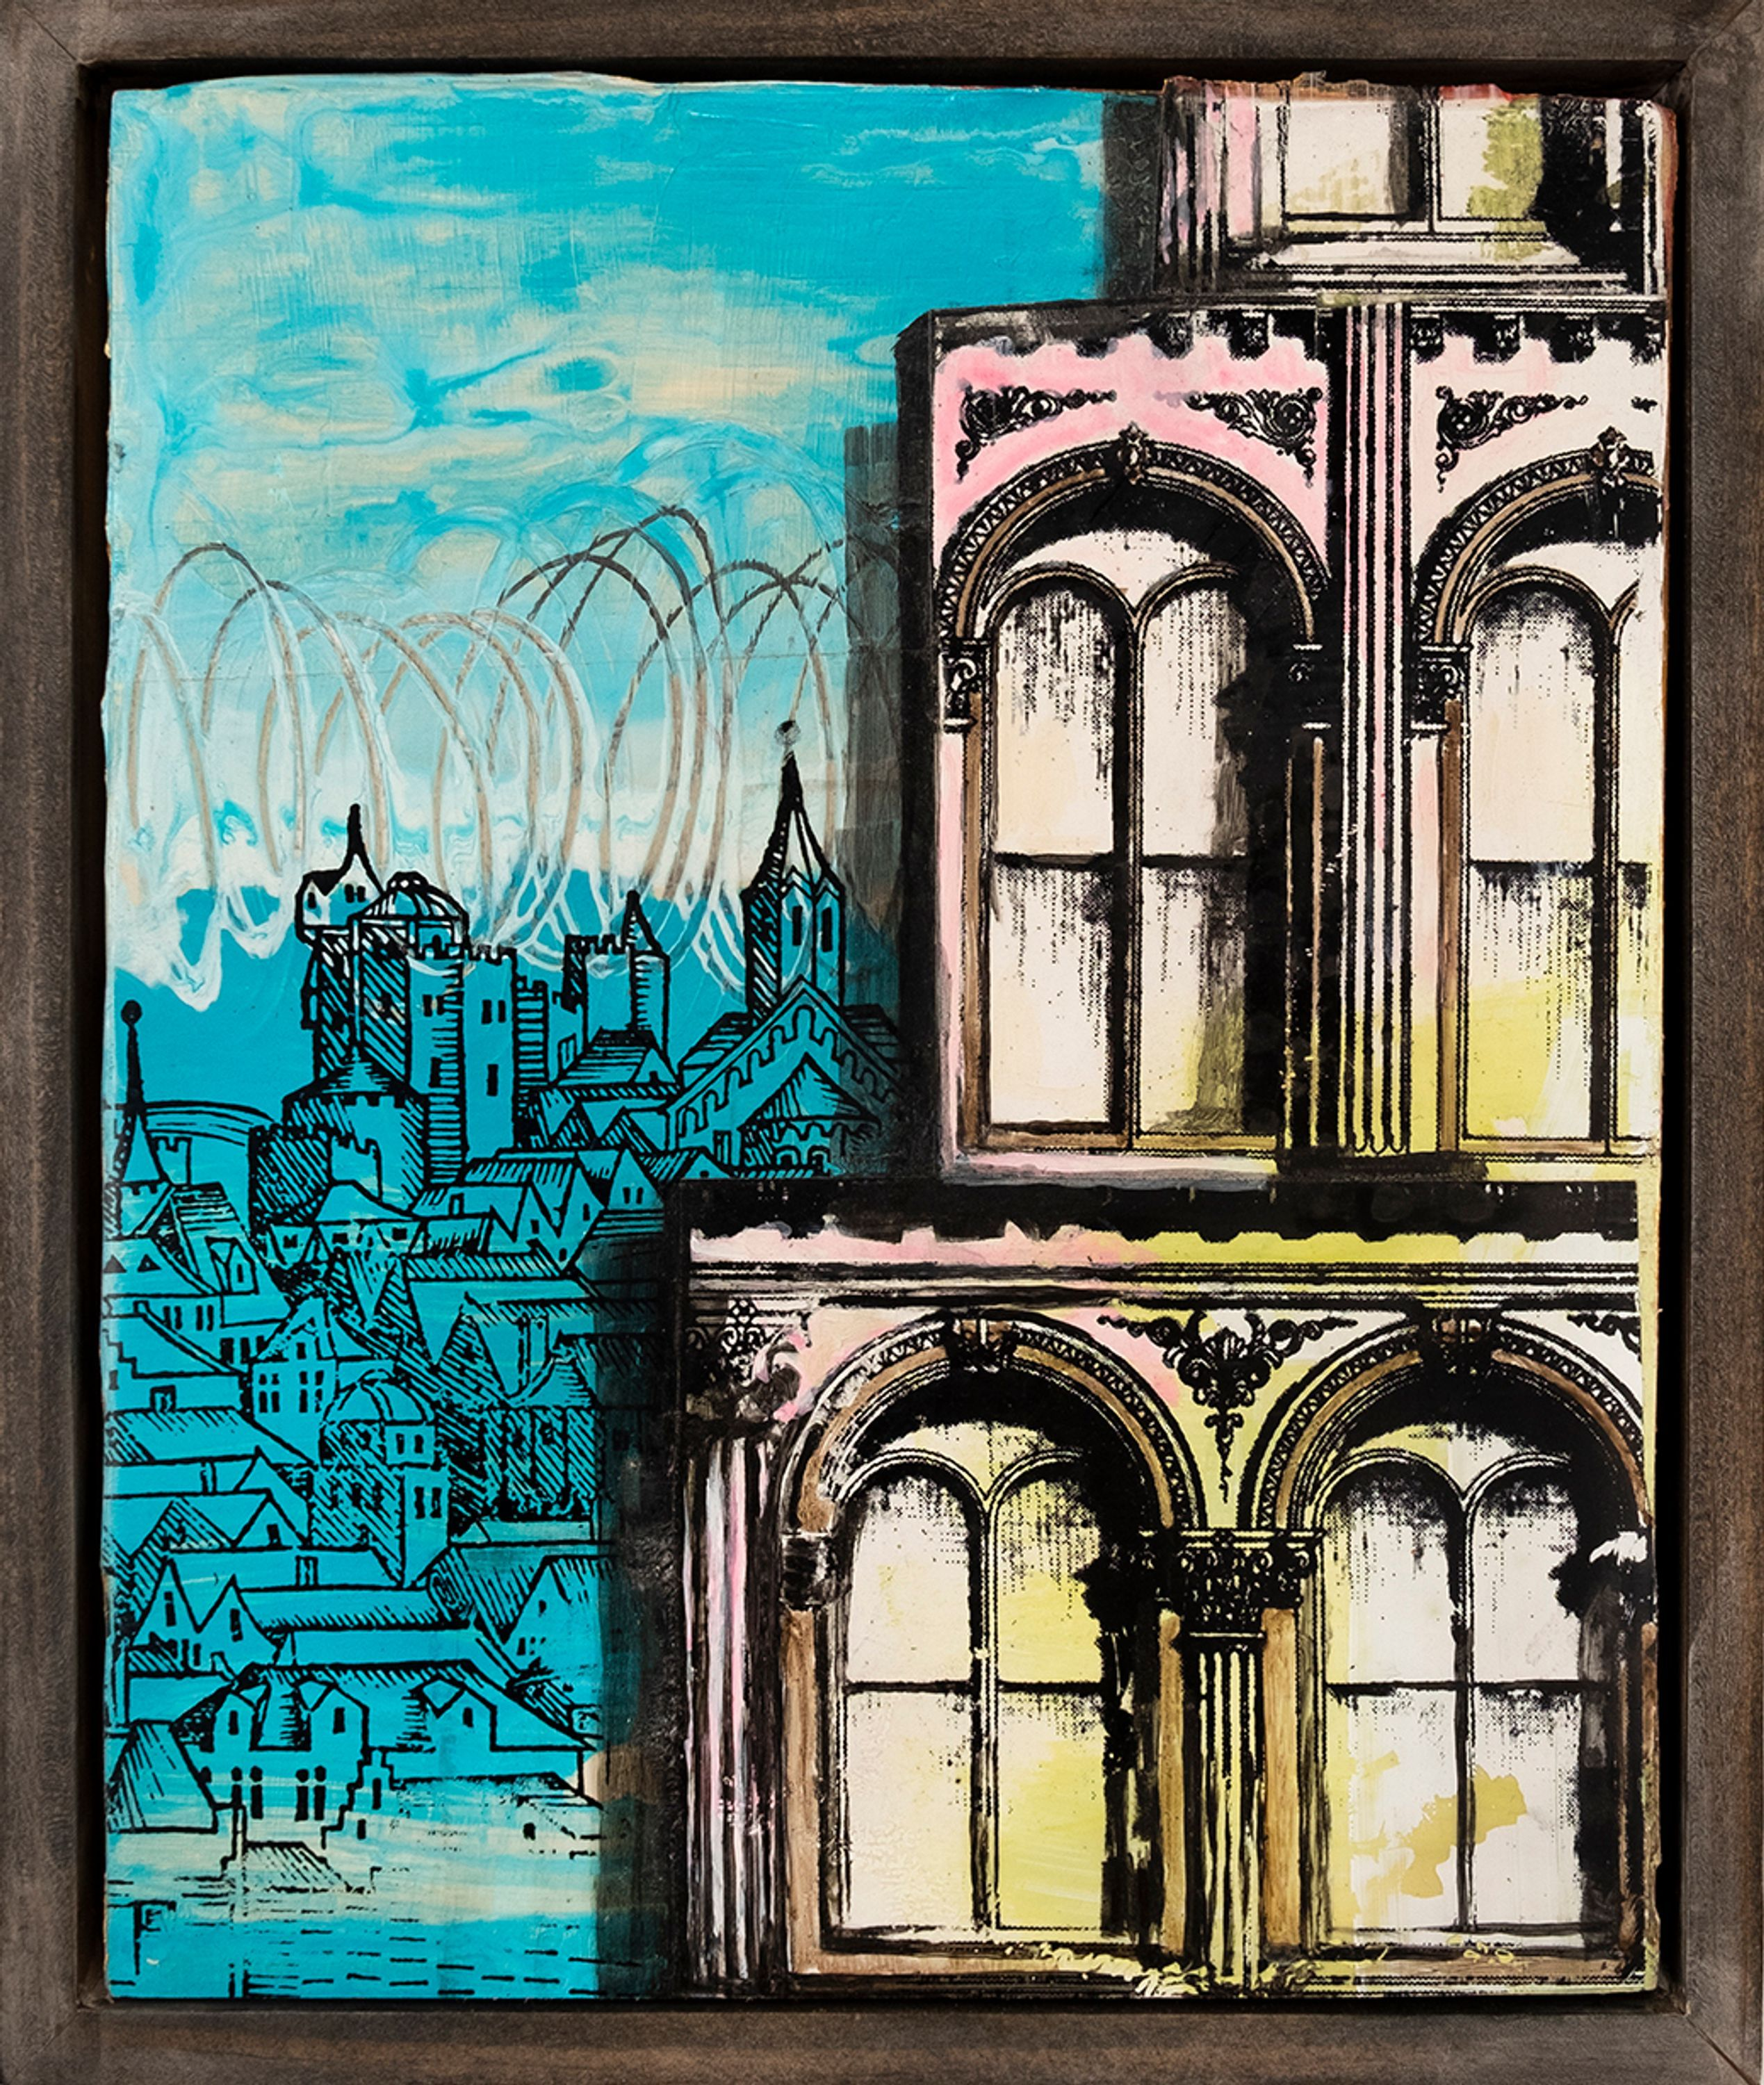 View From Here by David Hochbaum, Luisa Catucci Gallery